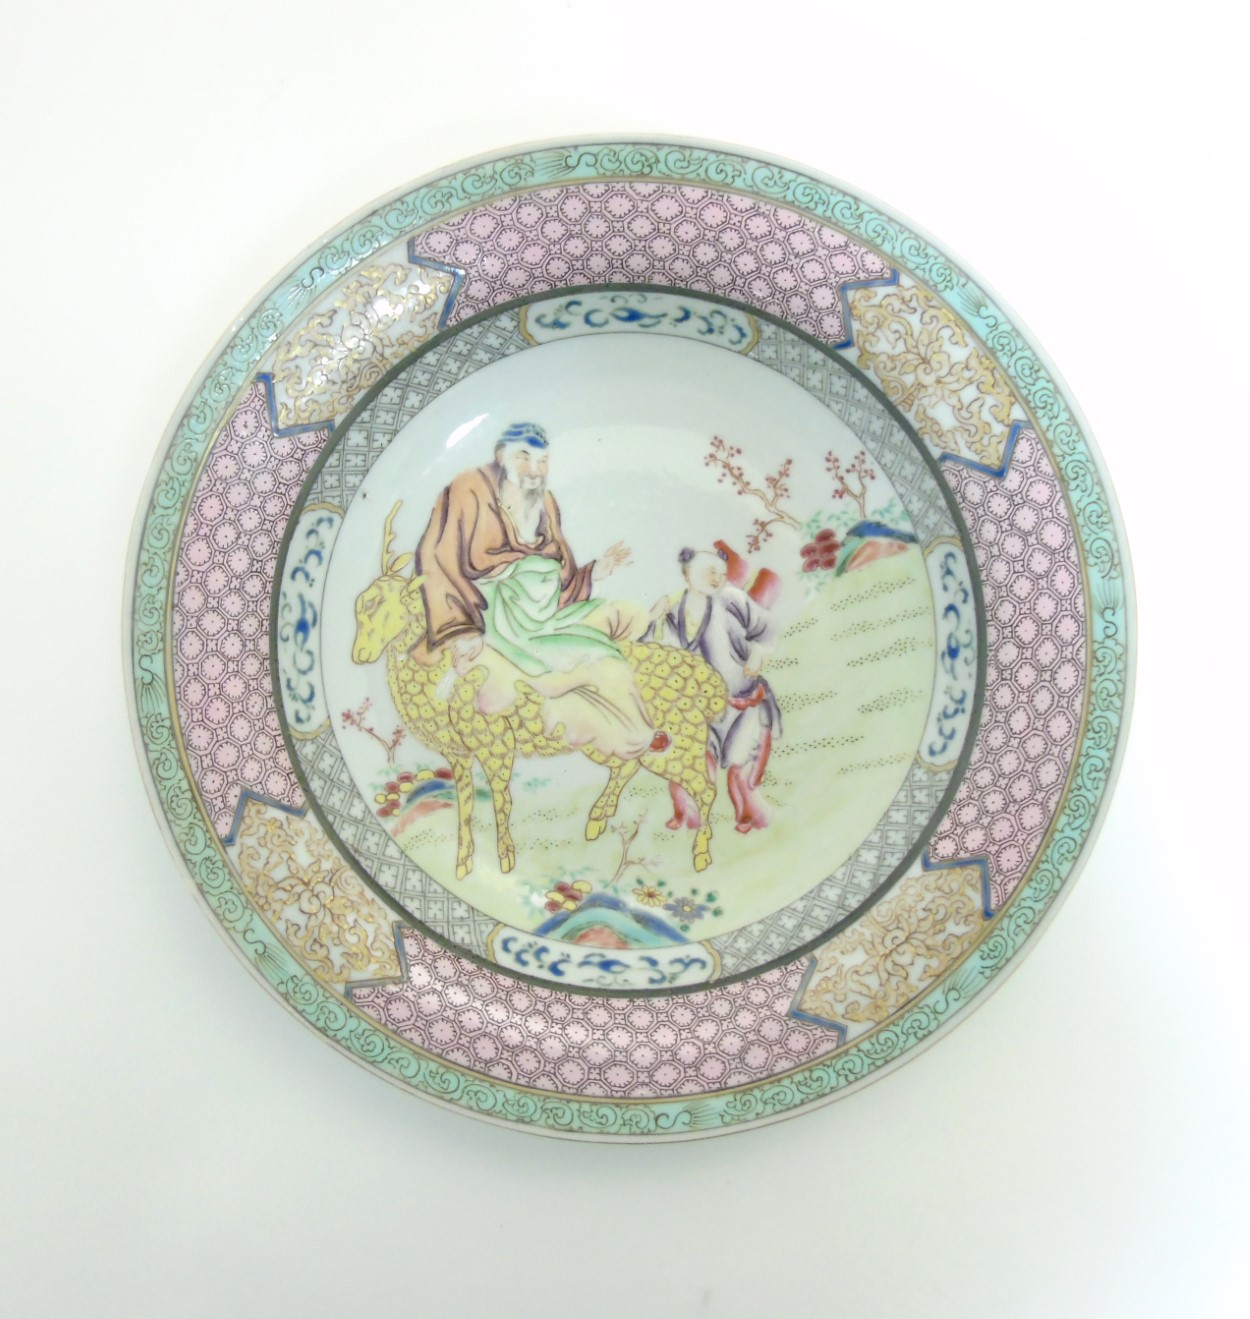 Lot 14 - A Chinese Famille Rose plate with a figure on a yellow coloured deer together with a child to